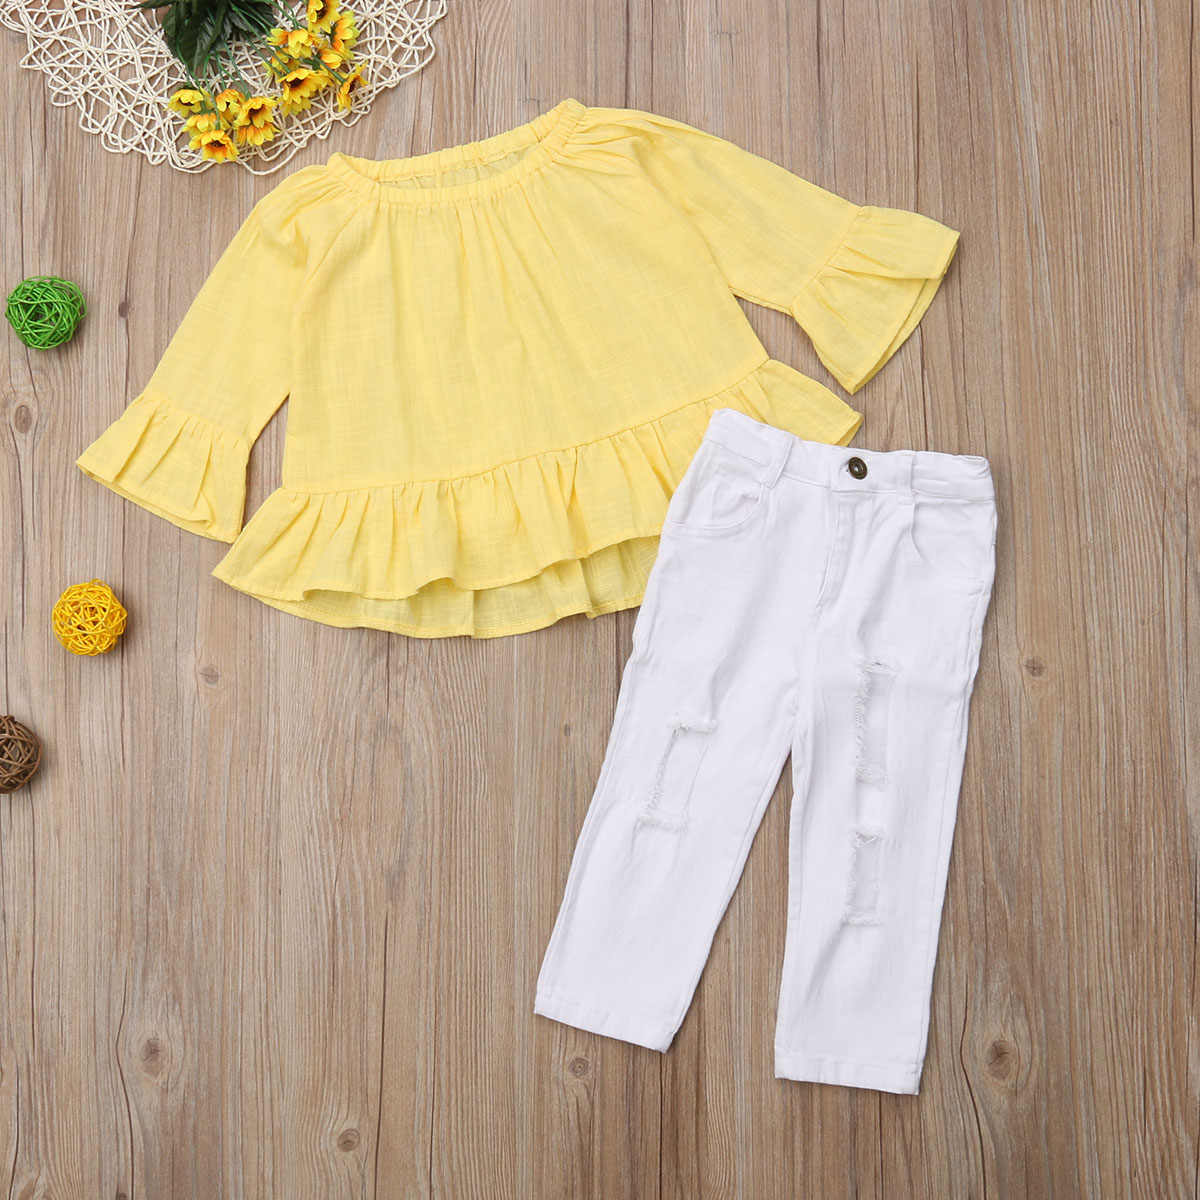 Toddler Kids Baby Girls Flower Top Blouse Pants Leggings Outfits Set Clothes UK